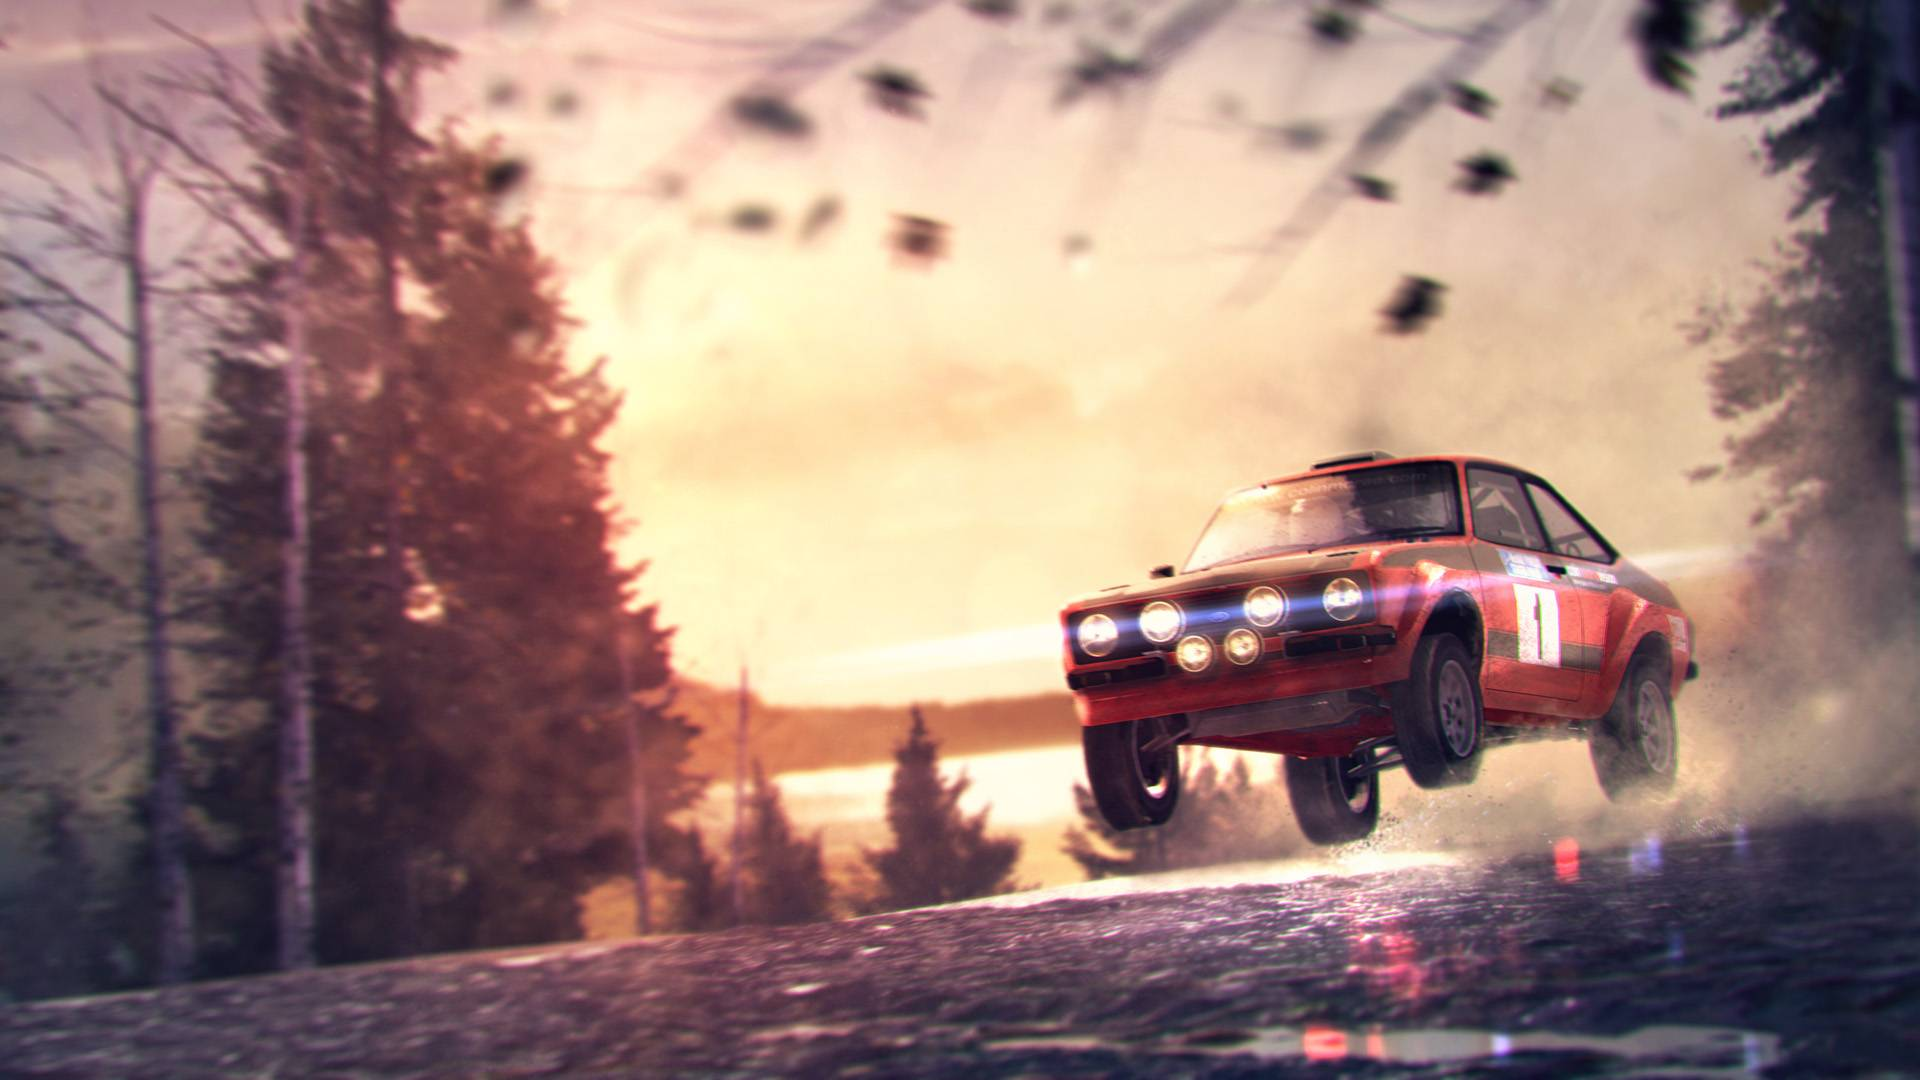 10 Best Gaming Wallpaper Hd 1920x1080 Full Hd 1080p For Pc: DiRT 3 Wallpapers In Full 1080P HD